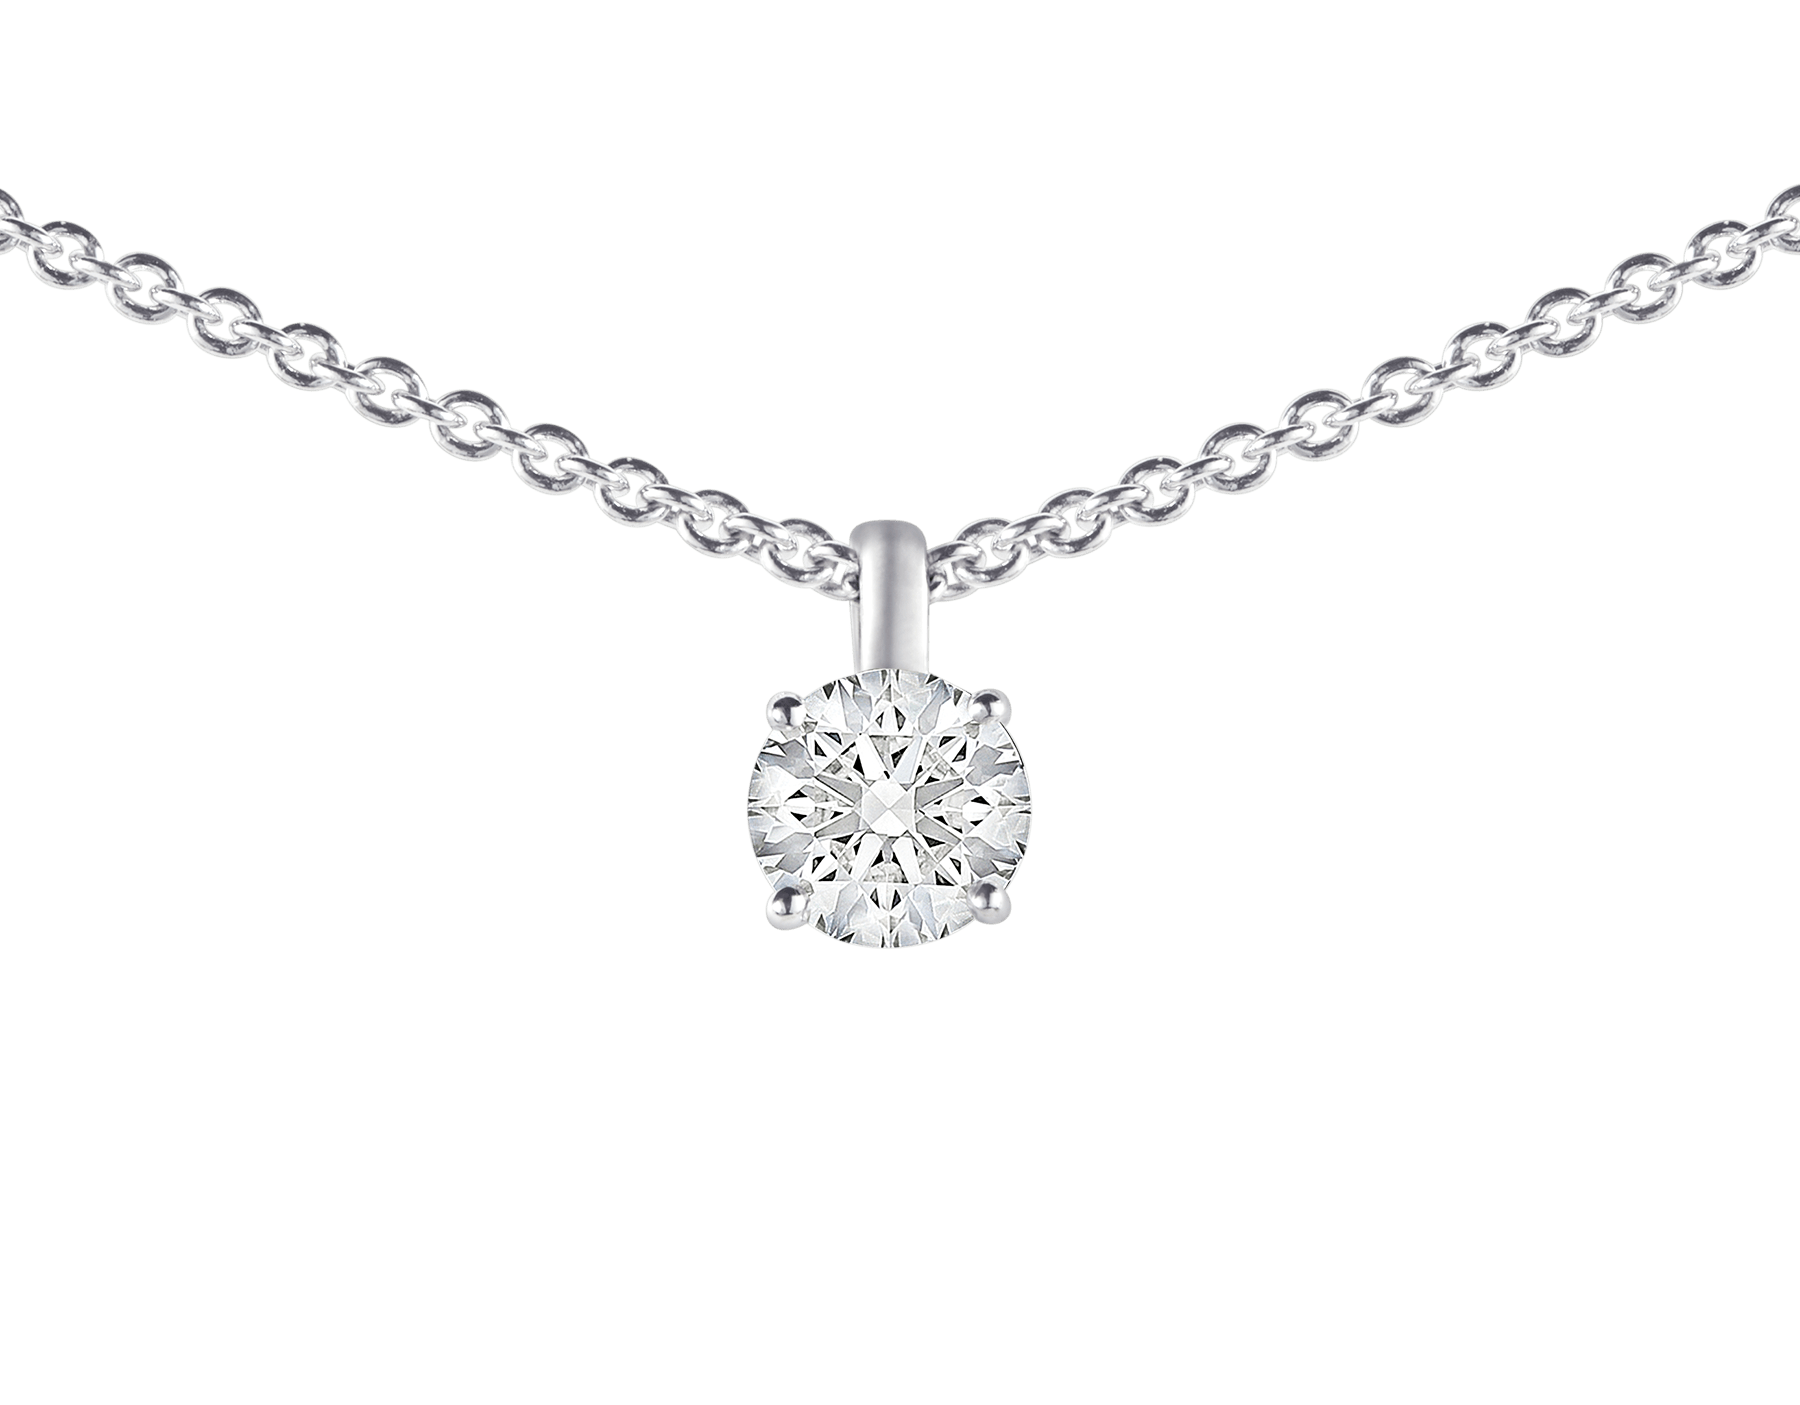 Griffe 18 kt white gold pendant with round brilliant cut diamond and 18 kt white gold chain 338201 image 3